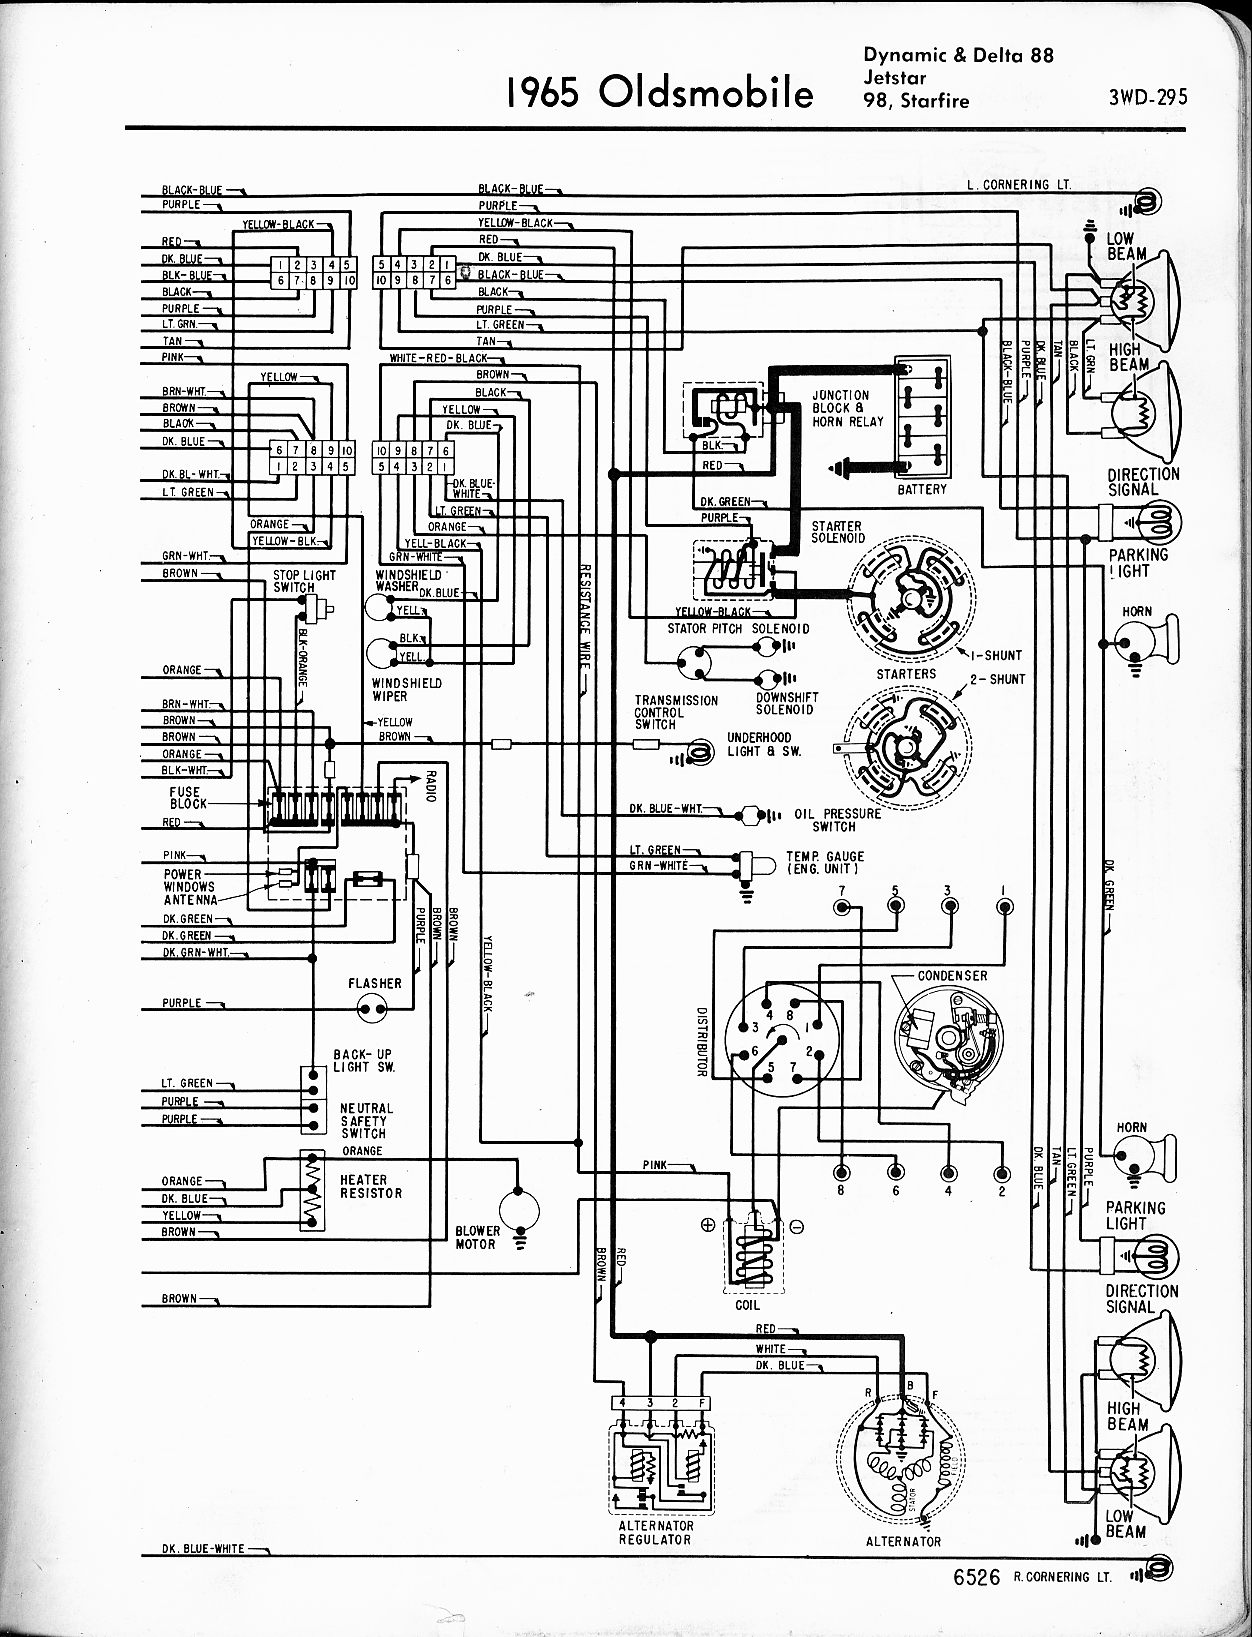 [WRG-2562] 1987 Cutlass Supreme Wiring Diagram